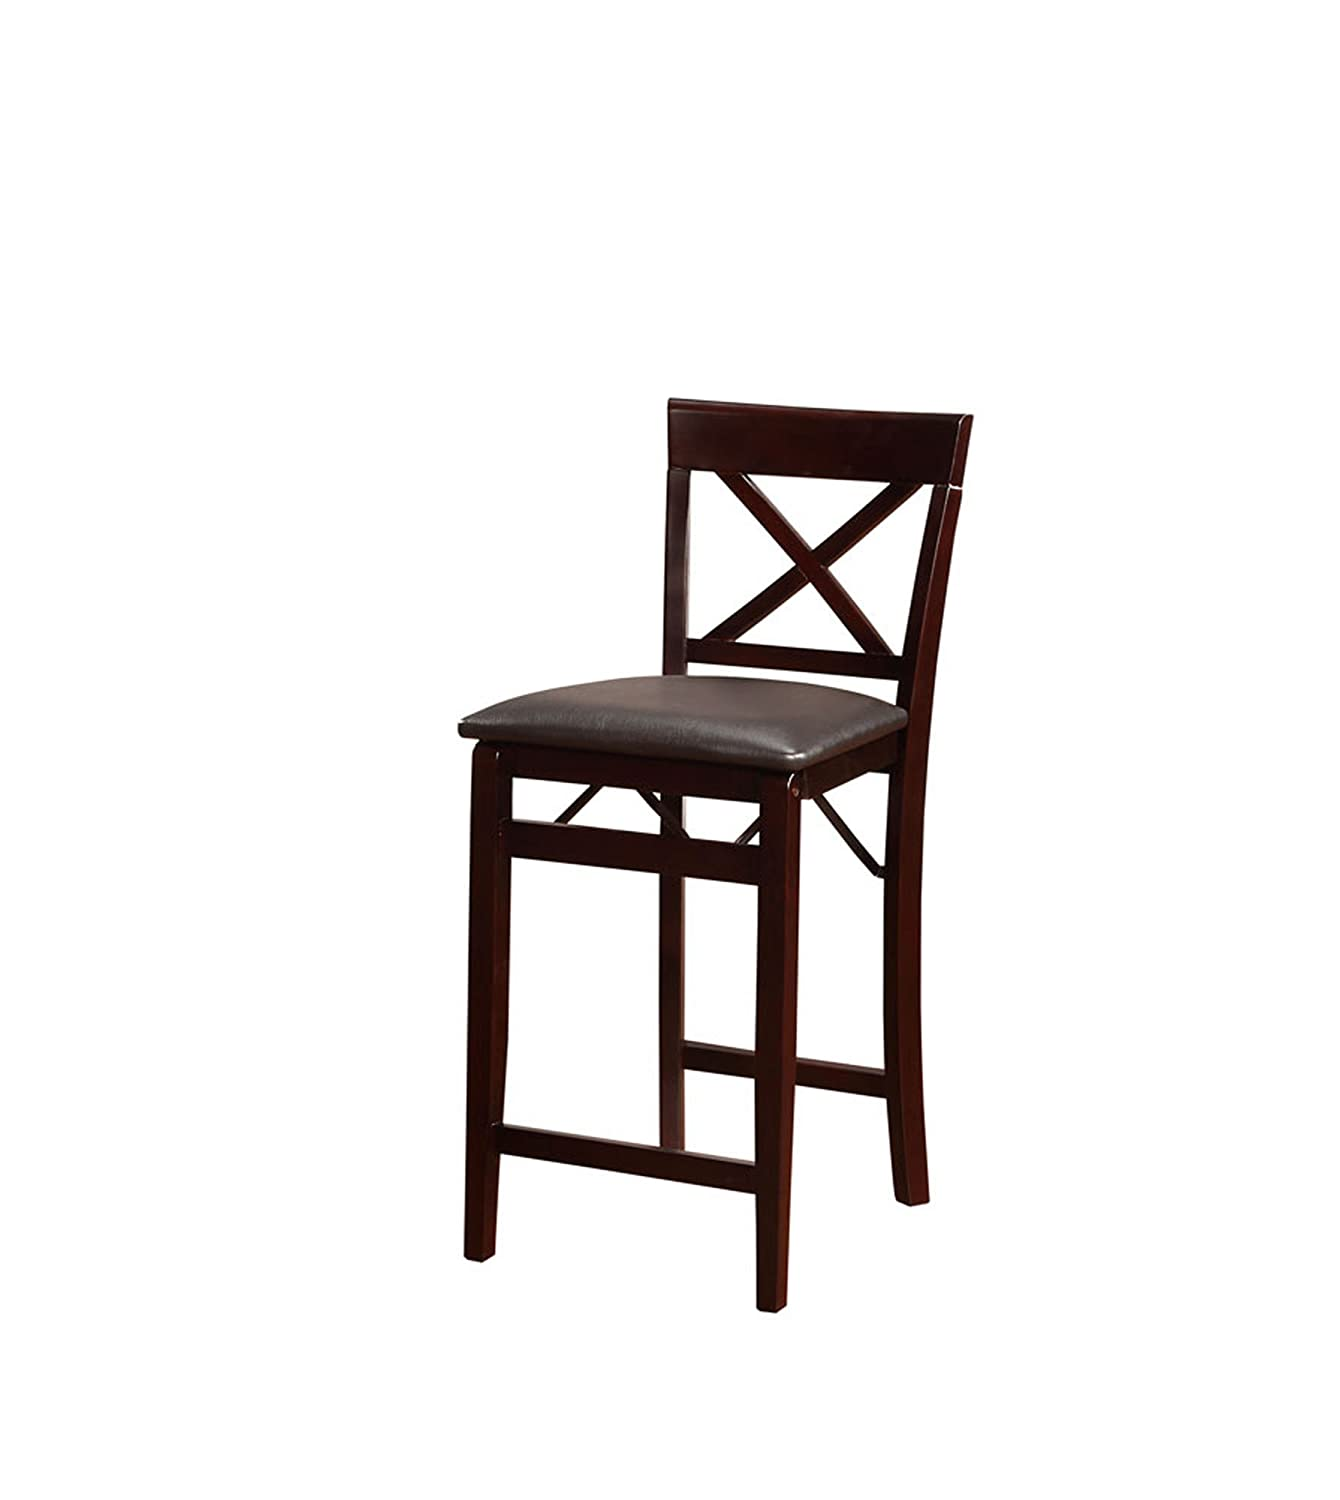 Wonderful Amazon.com: Linon Triena X Back Folding Counter Stool: Kitchen U0026 Dining